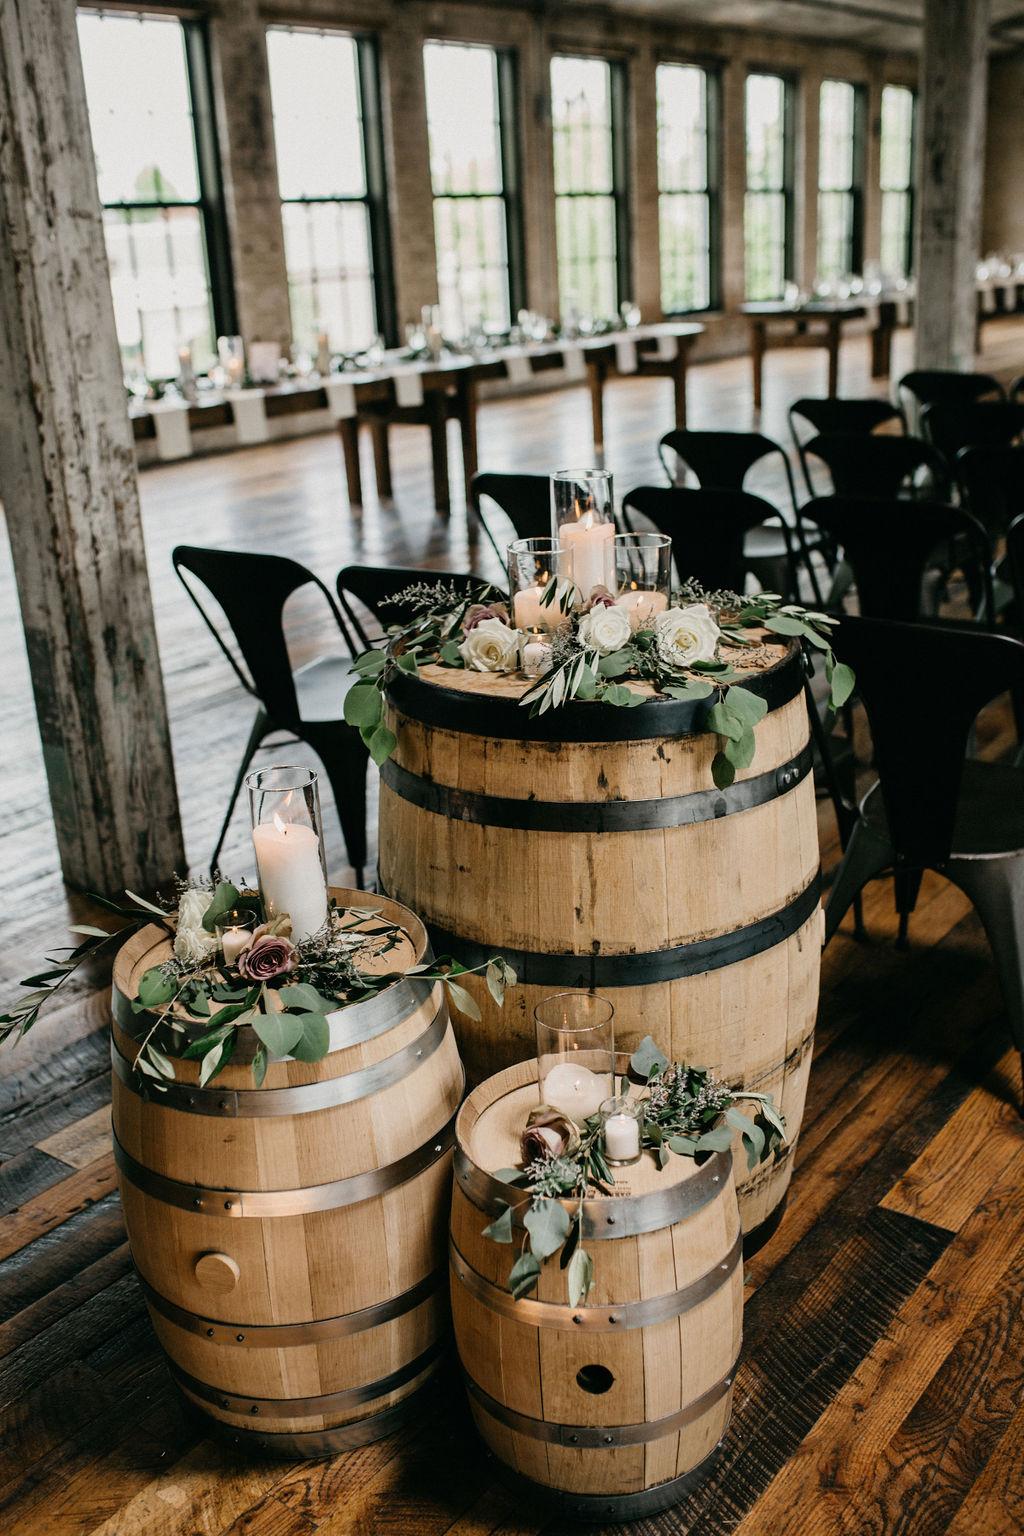 Whiskey barrels set with flowers and candles